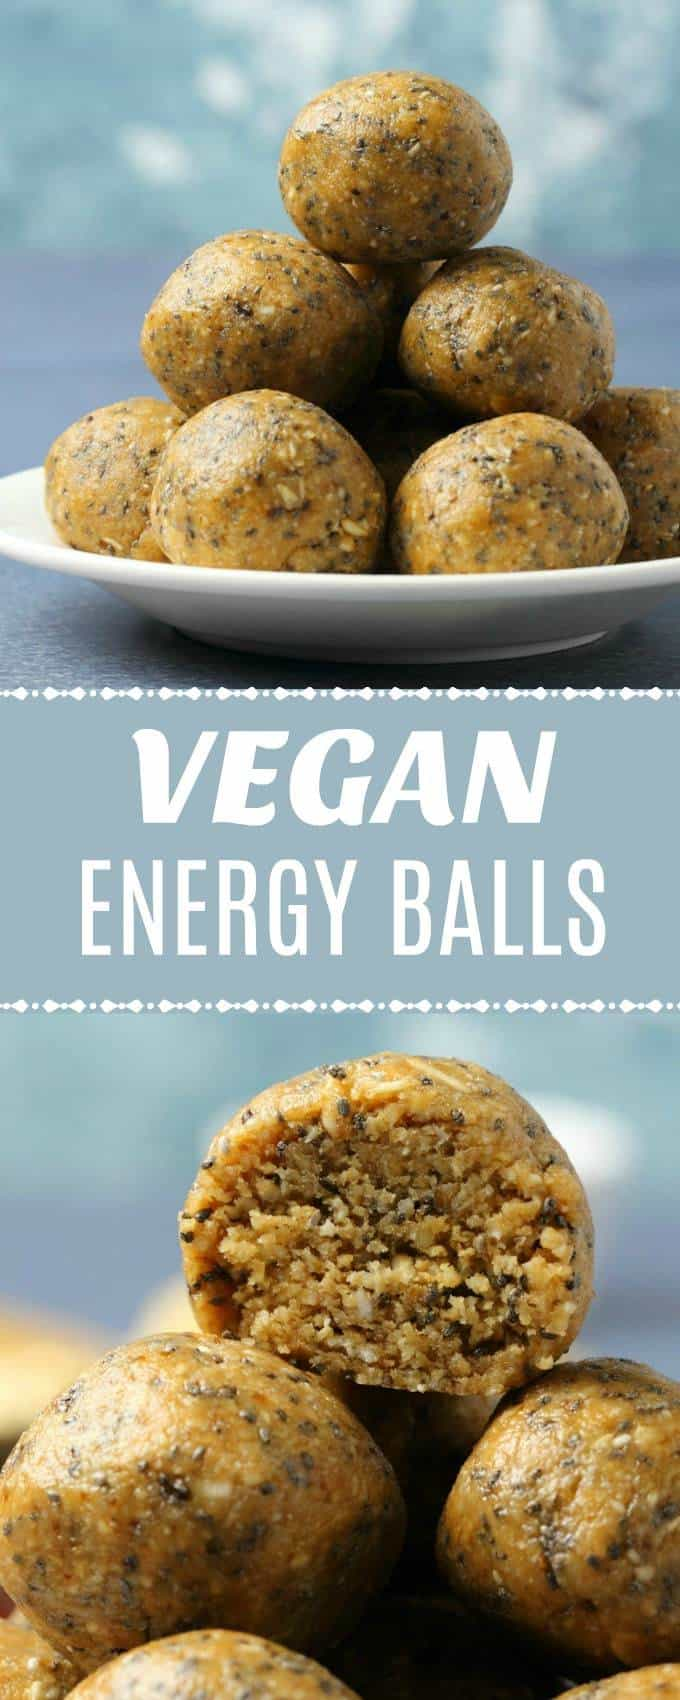 No-bake vegan energy balls made with 8-easy ingredients and ready in 15 minutes! Bite-sized and perfect for a healthy snack. Gluten-Free. | lovingitvegan.com